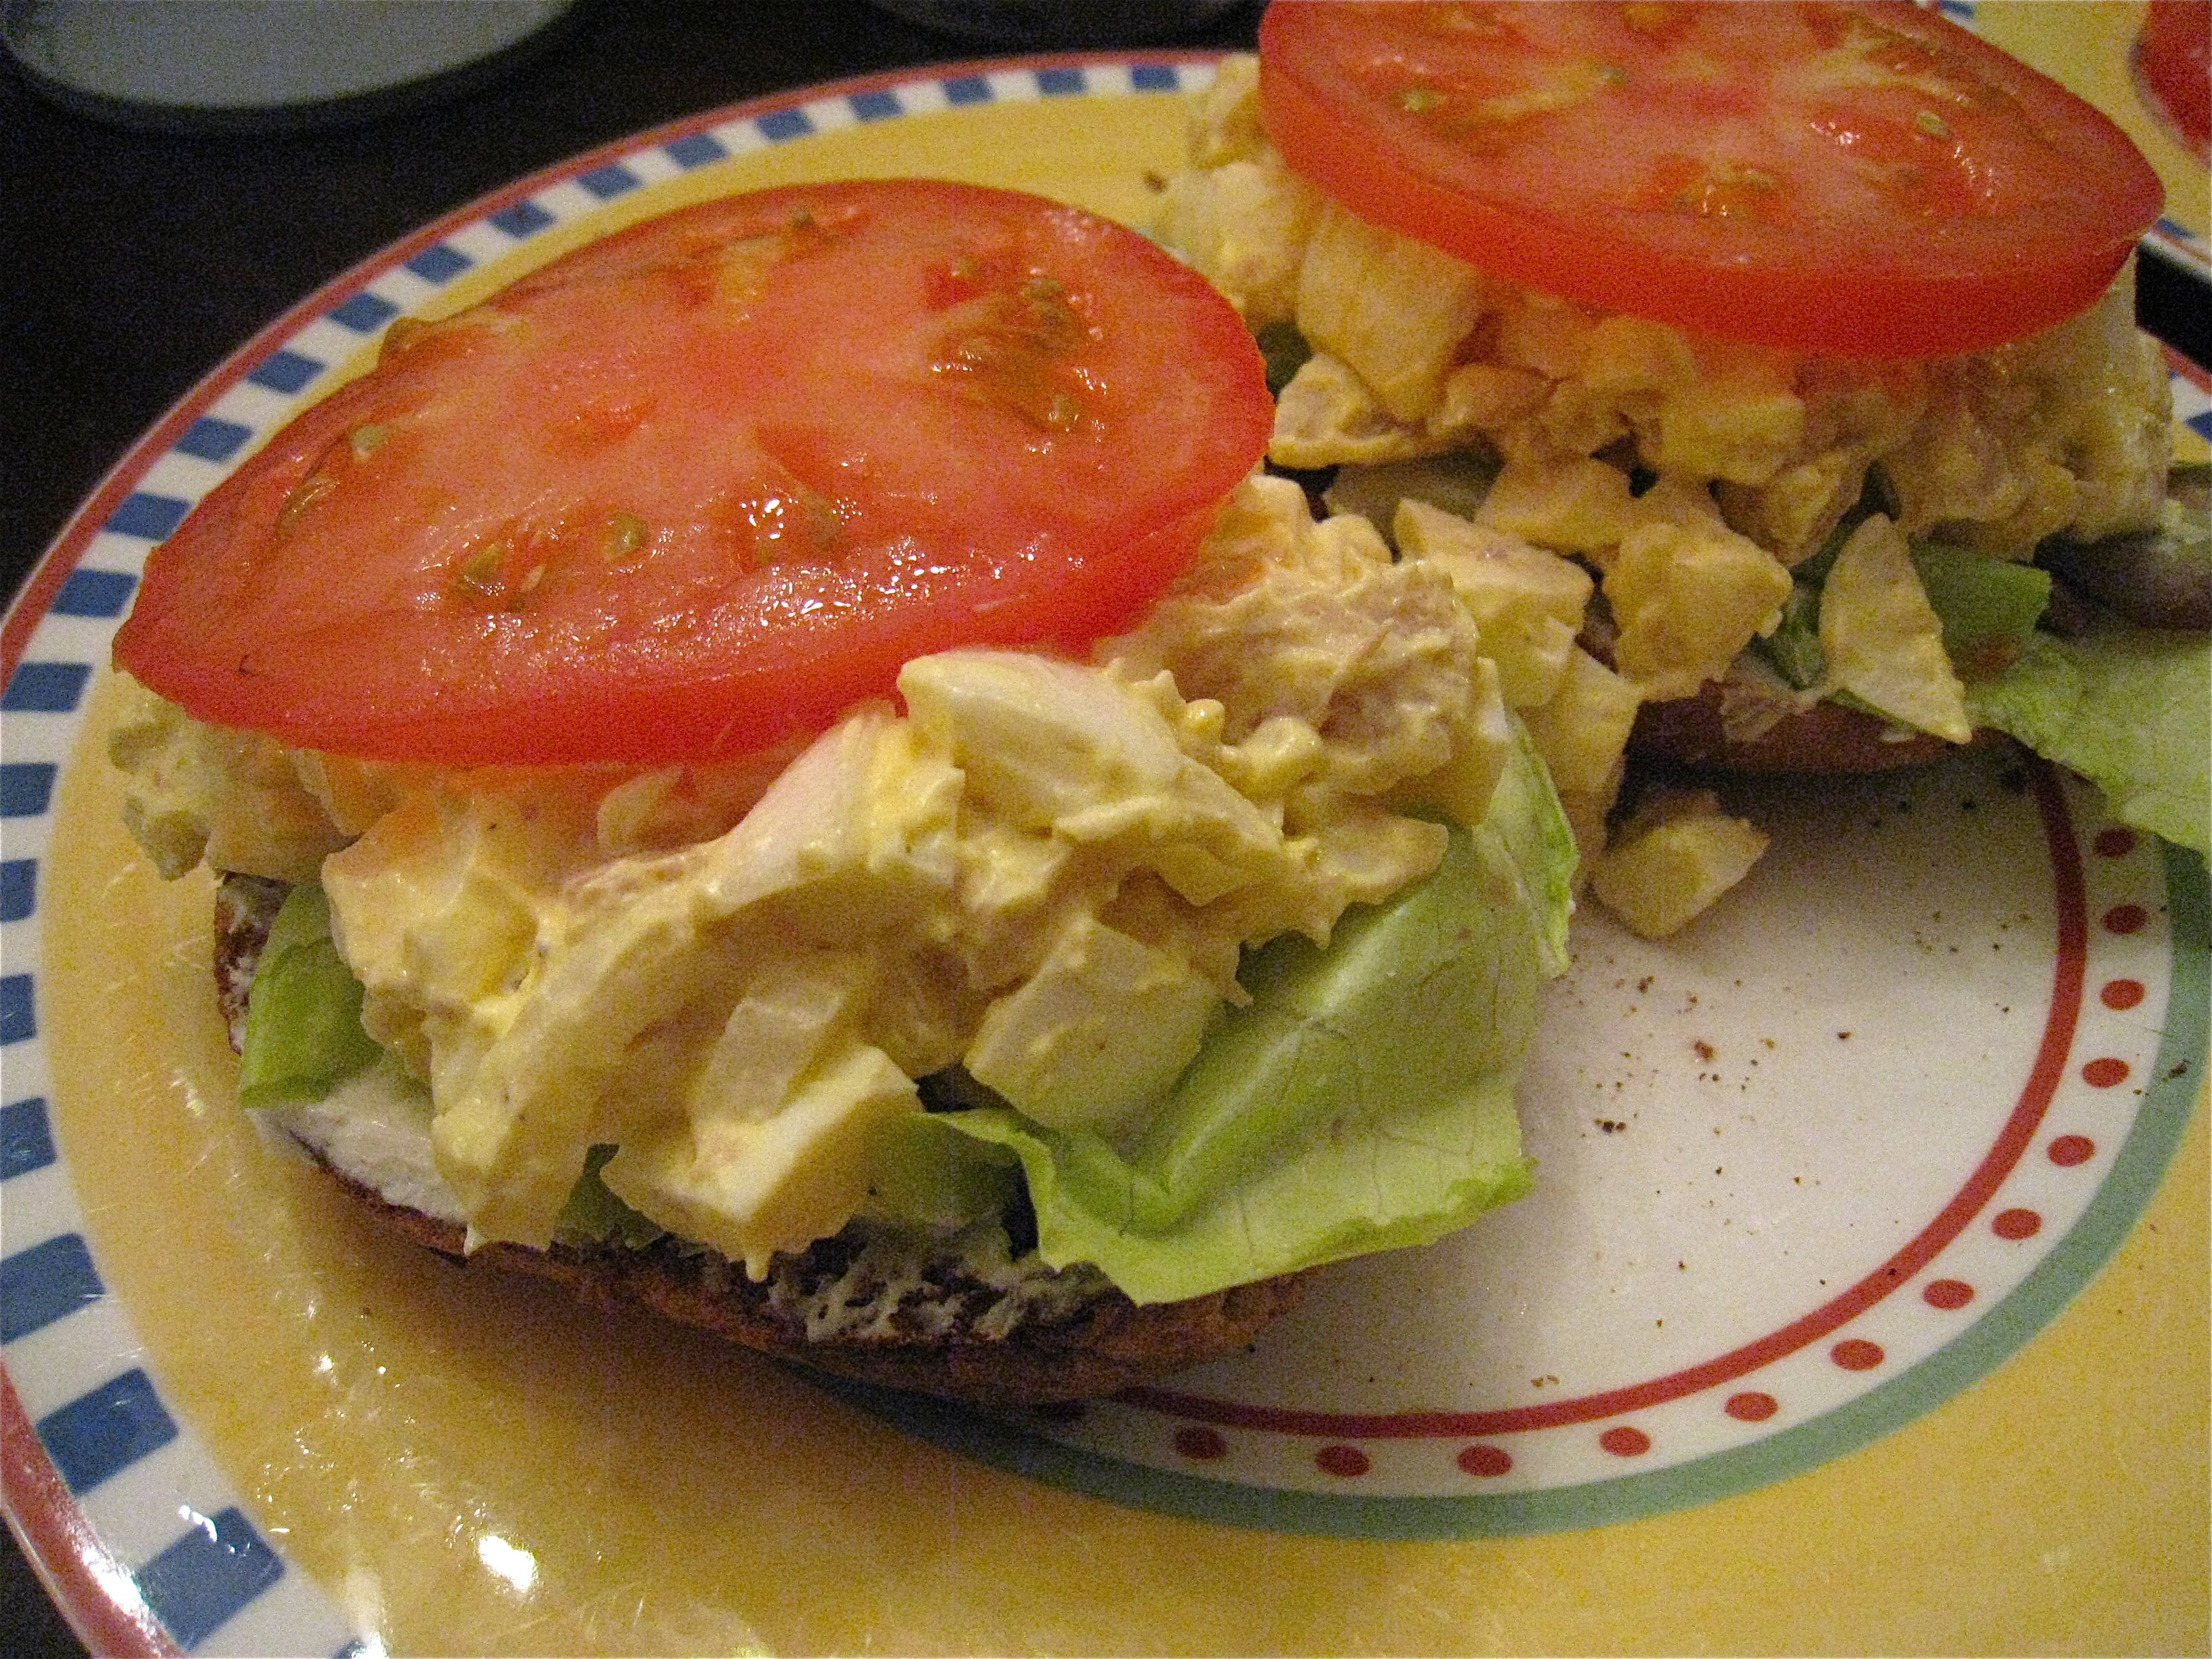 Smoked Trout, Egg, and Onion Salad on a Toasty Bagel